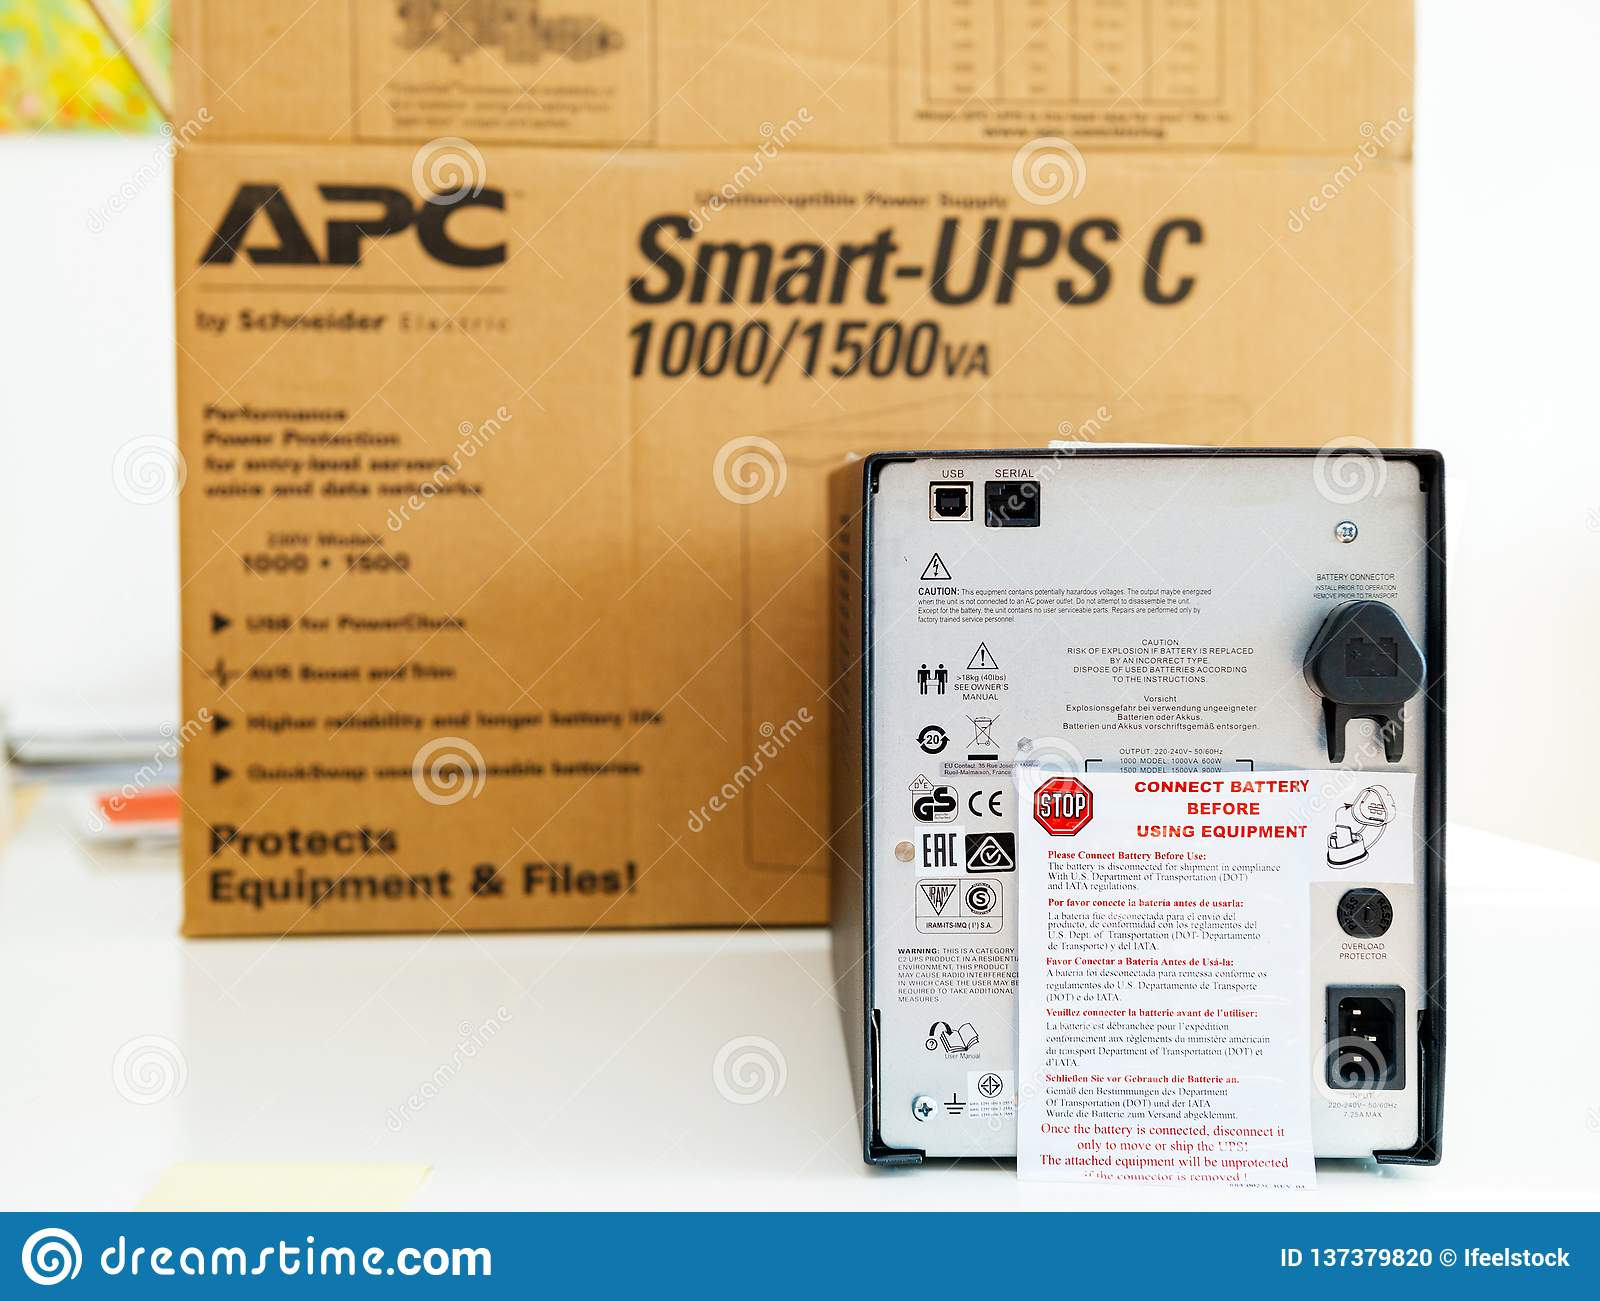 Uninterruptible Power Supply Made By American Power